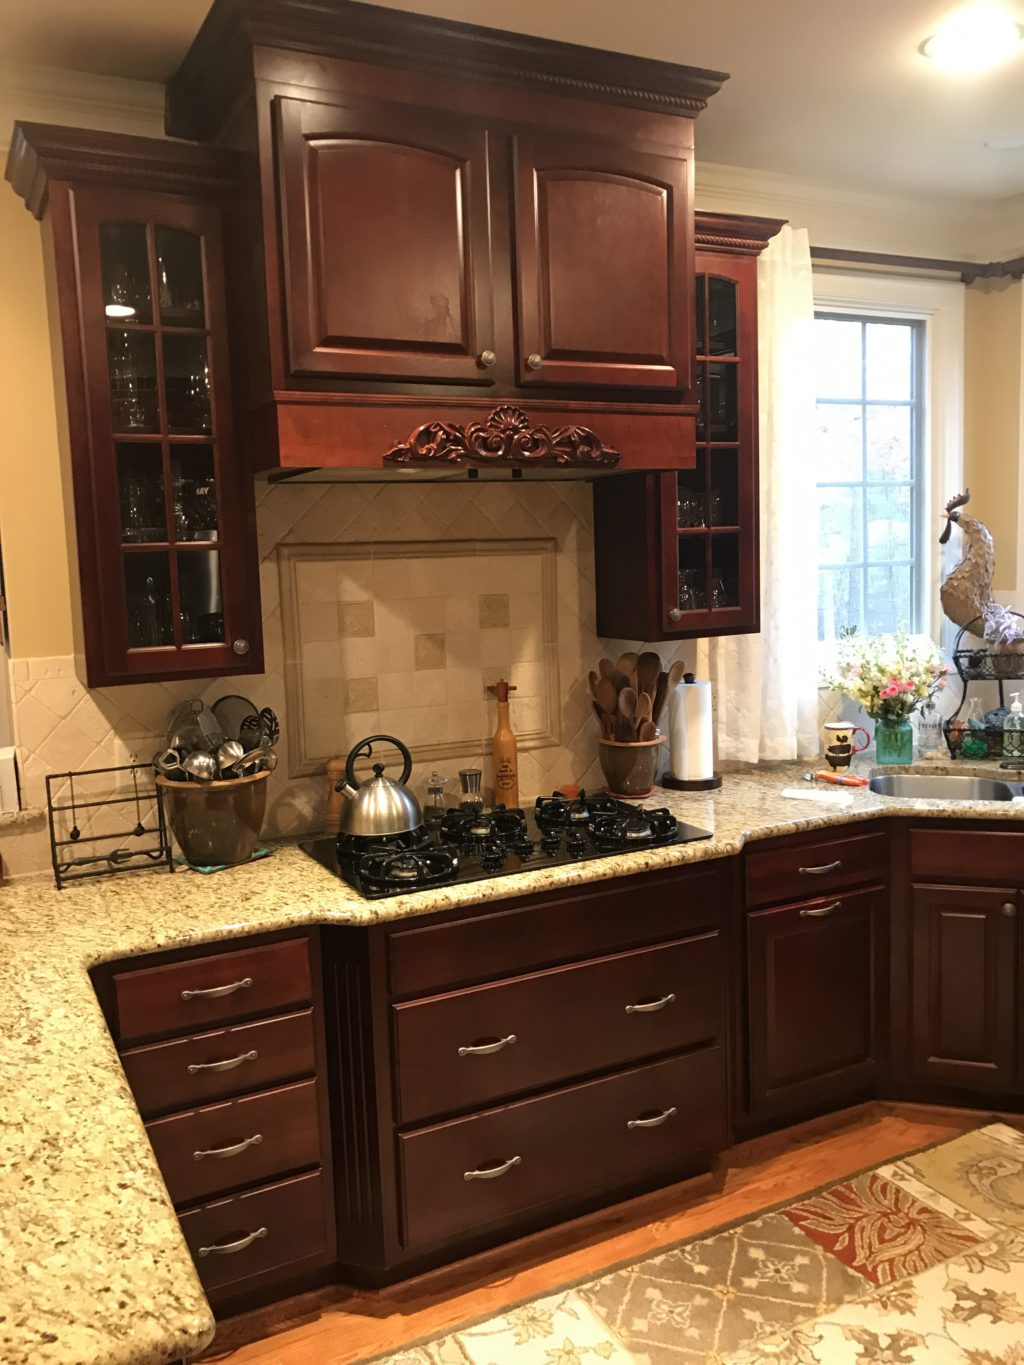 Custom Color Match Kitchen and Laundry Room - 2 Cabinet Girls